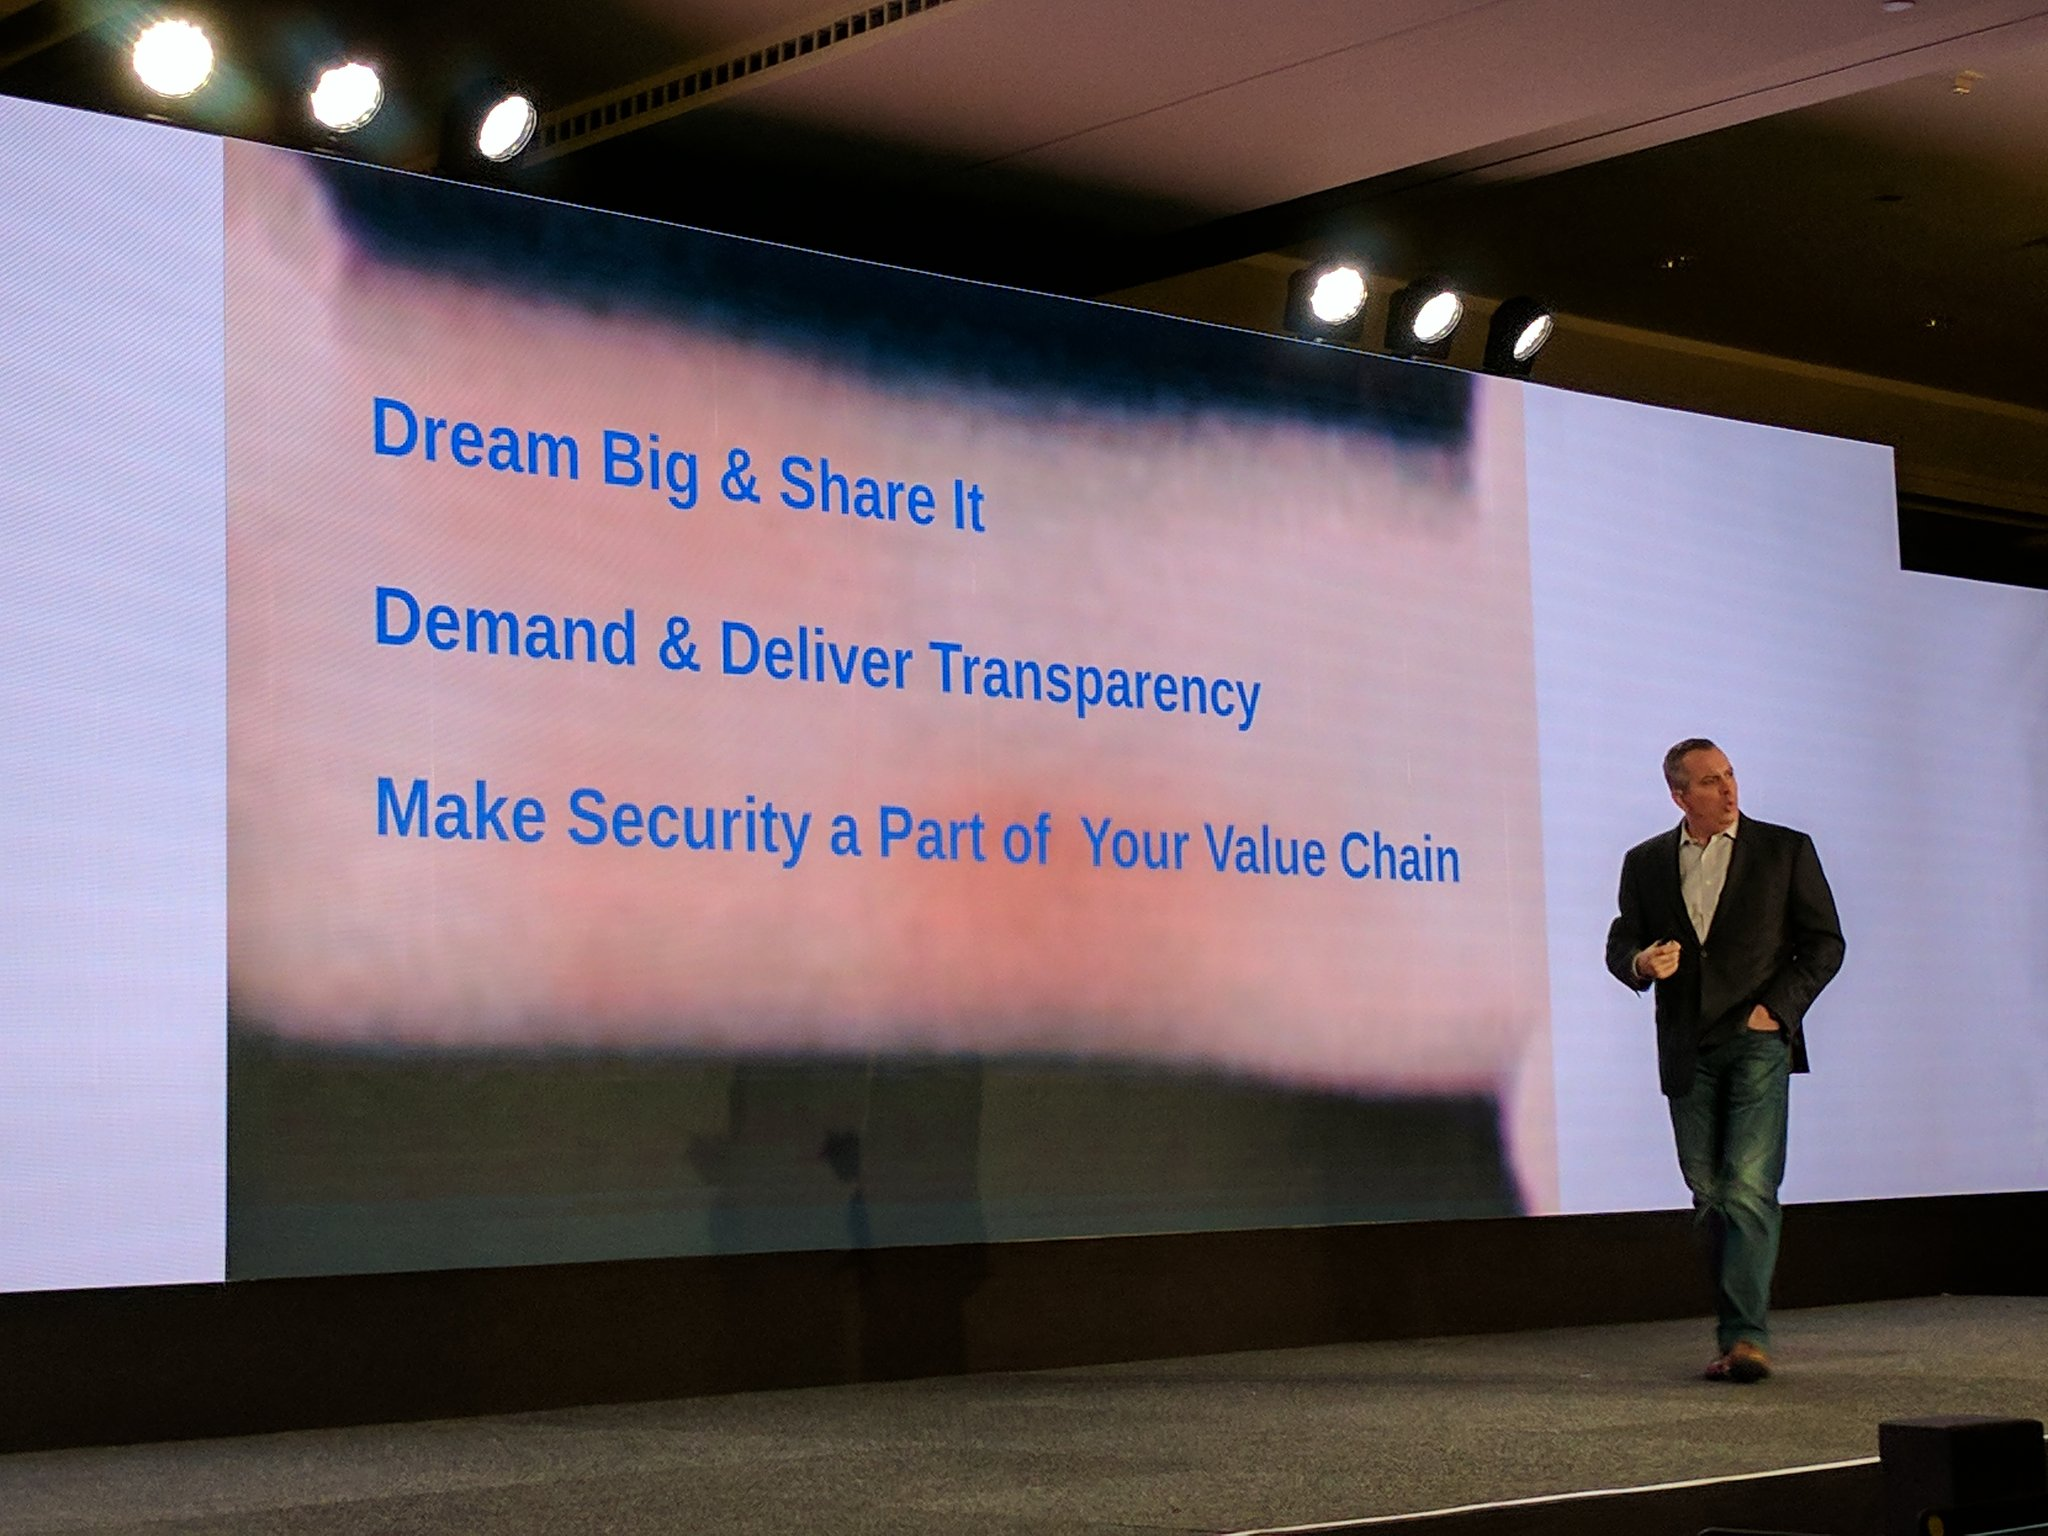 .@ADP Cloutier security recommendations  - Dream Big & Share - Demand & Deliver Transparency - Make security part of value chain #ADPReThink https://t.co/jscHueFu4x